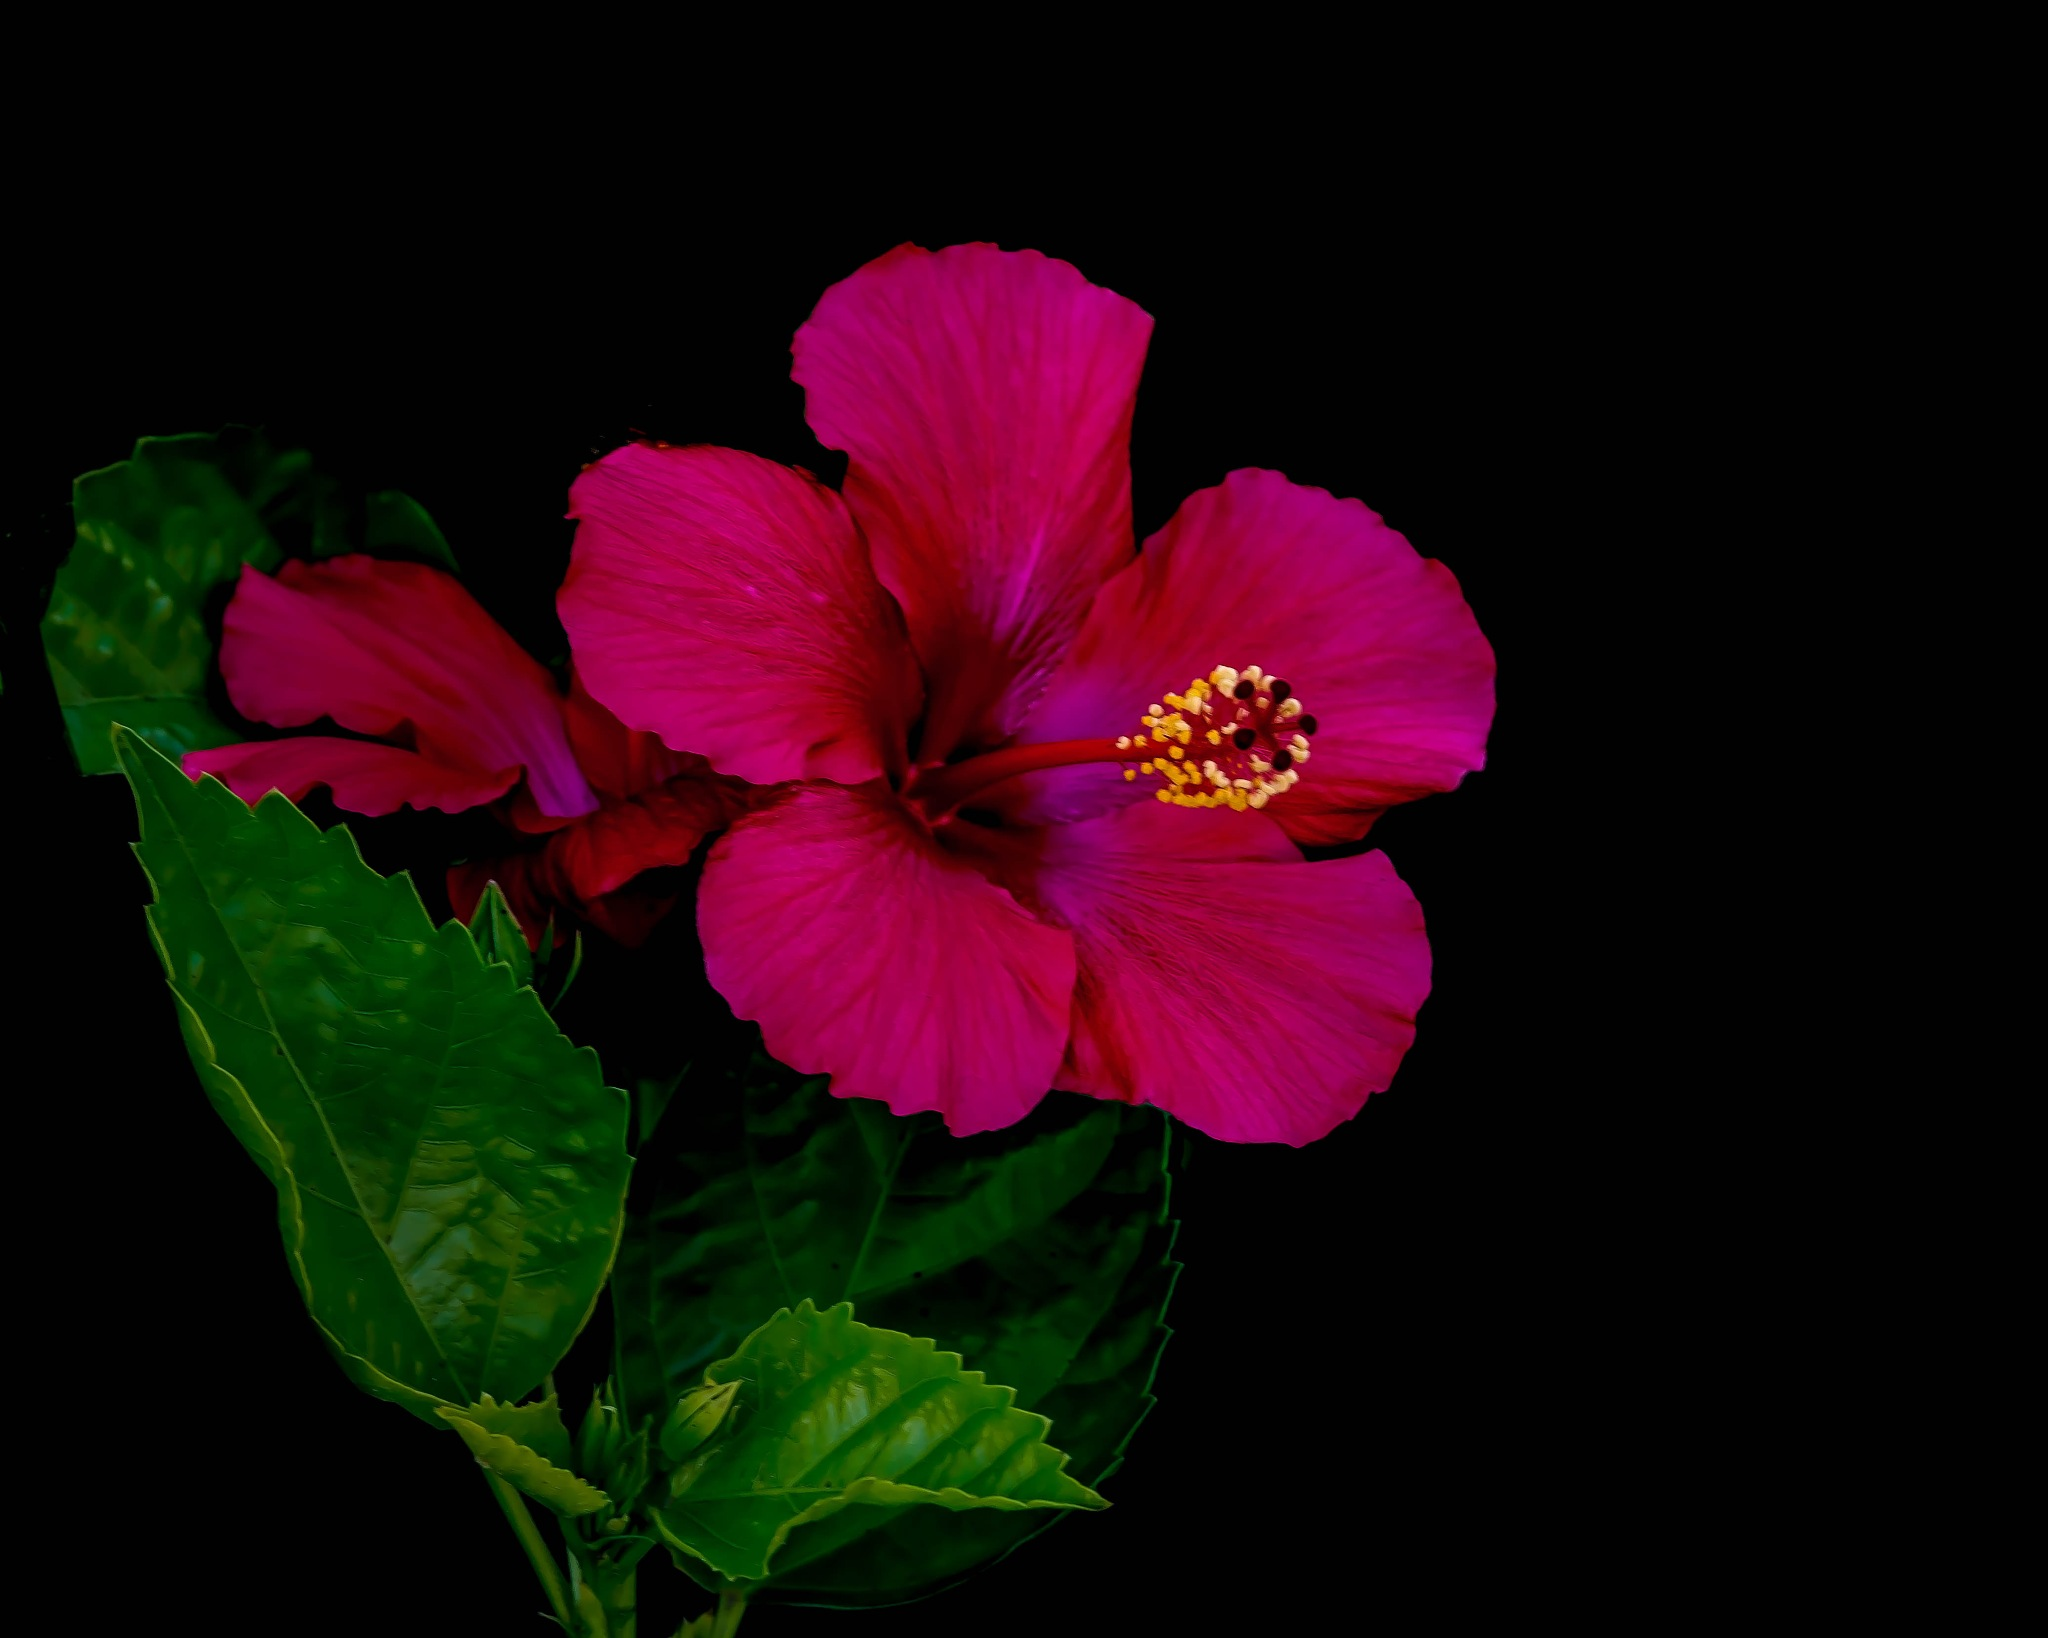 Hibiscus by Edward Brown